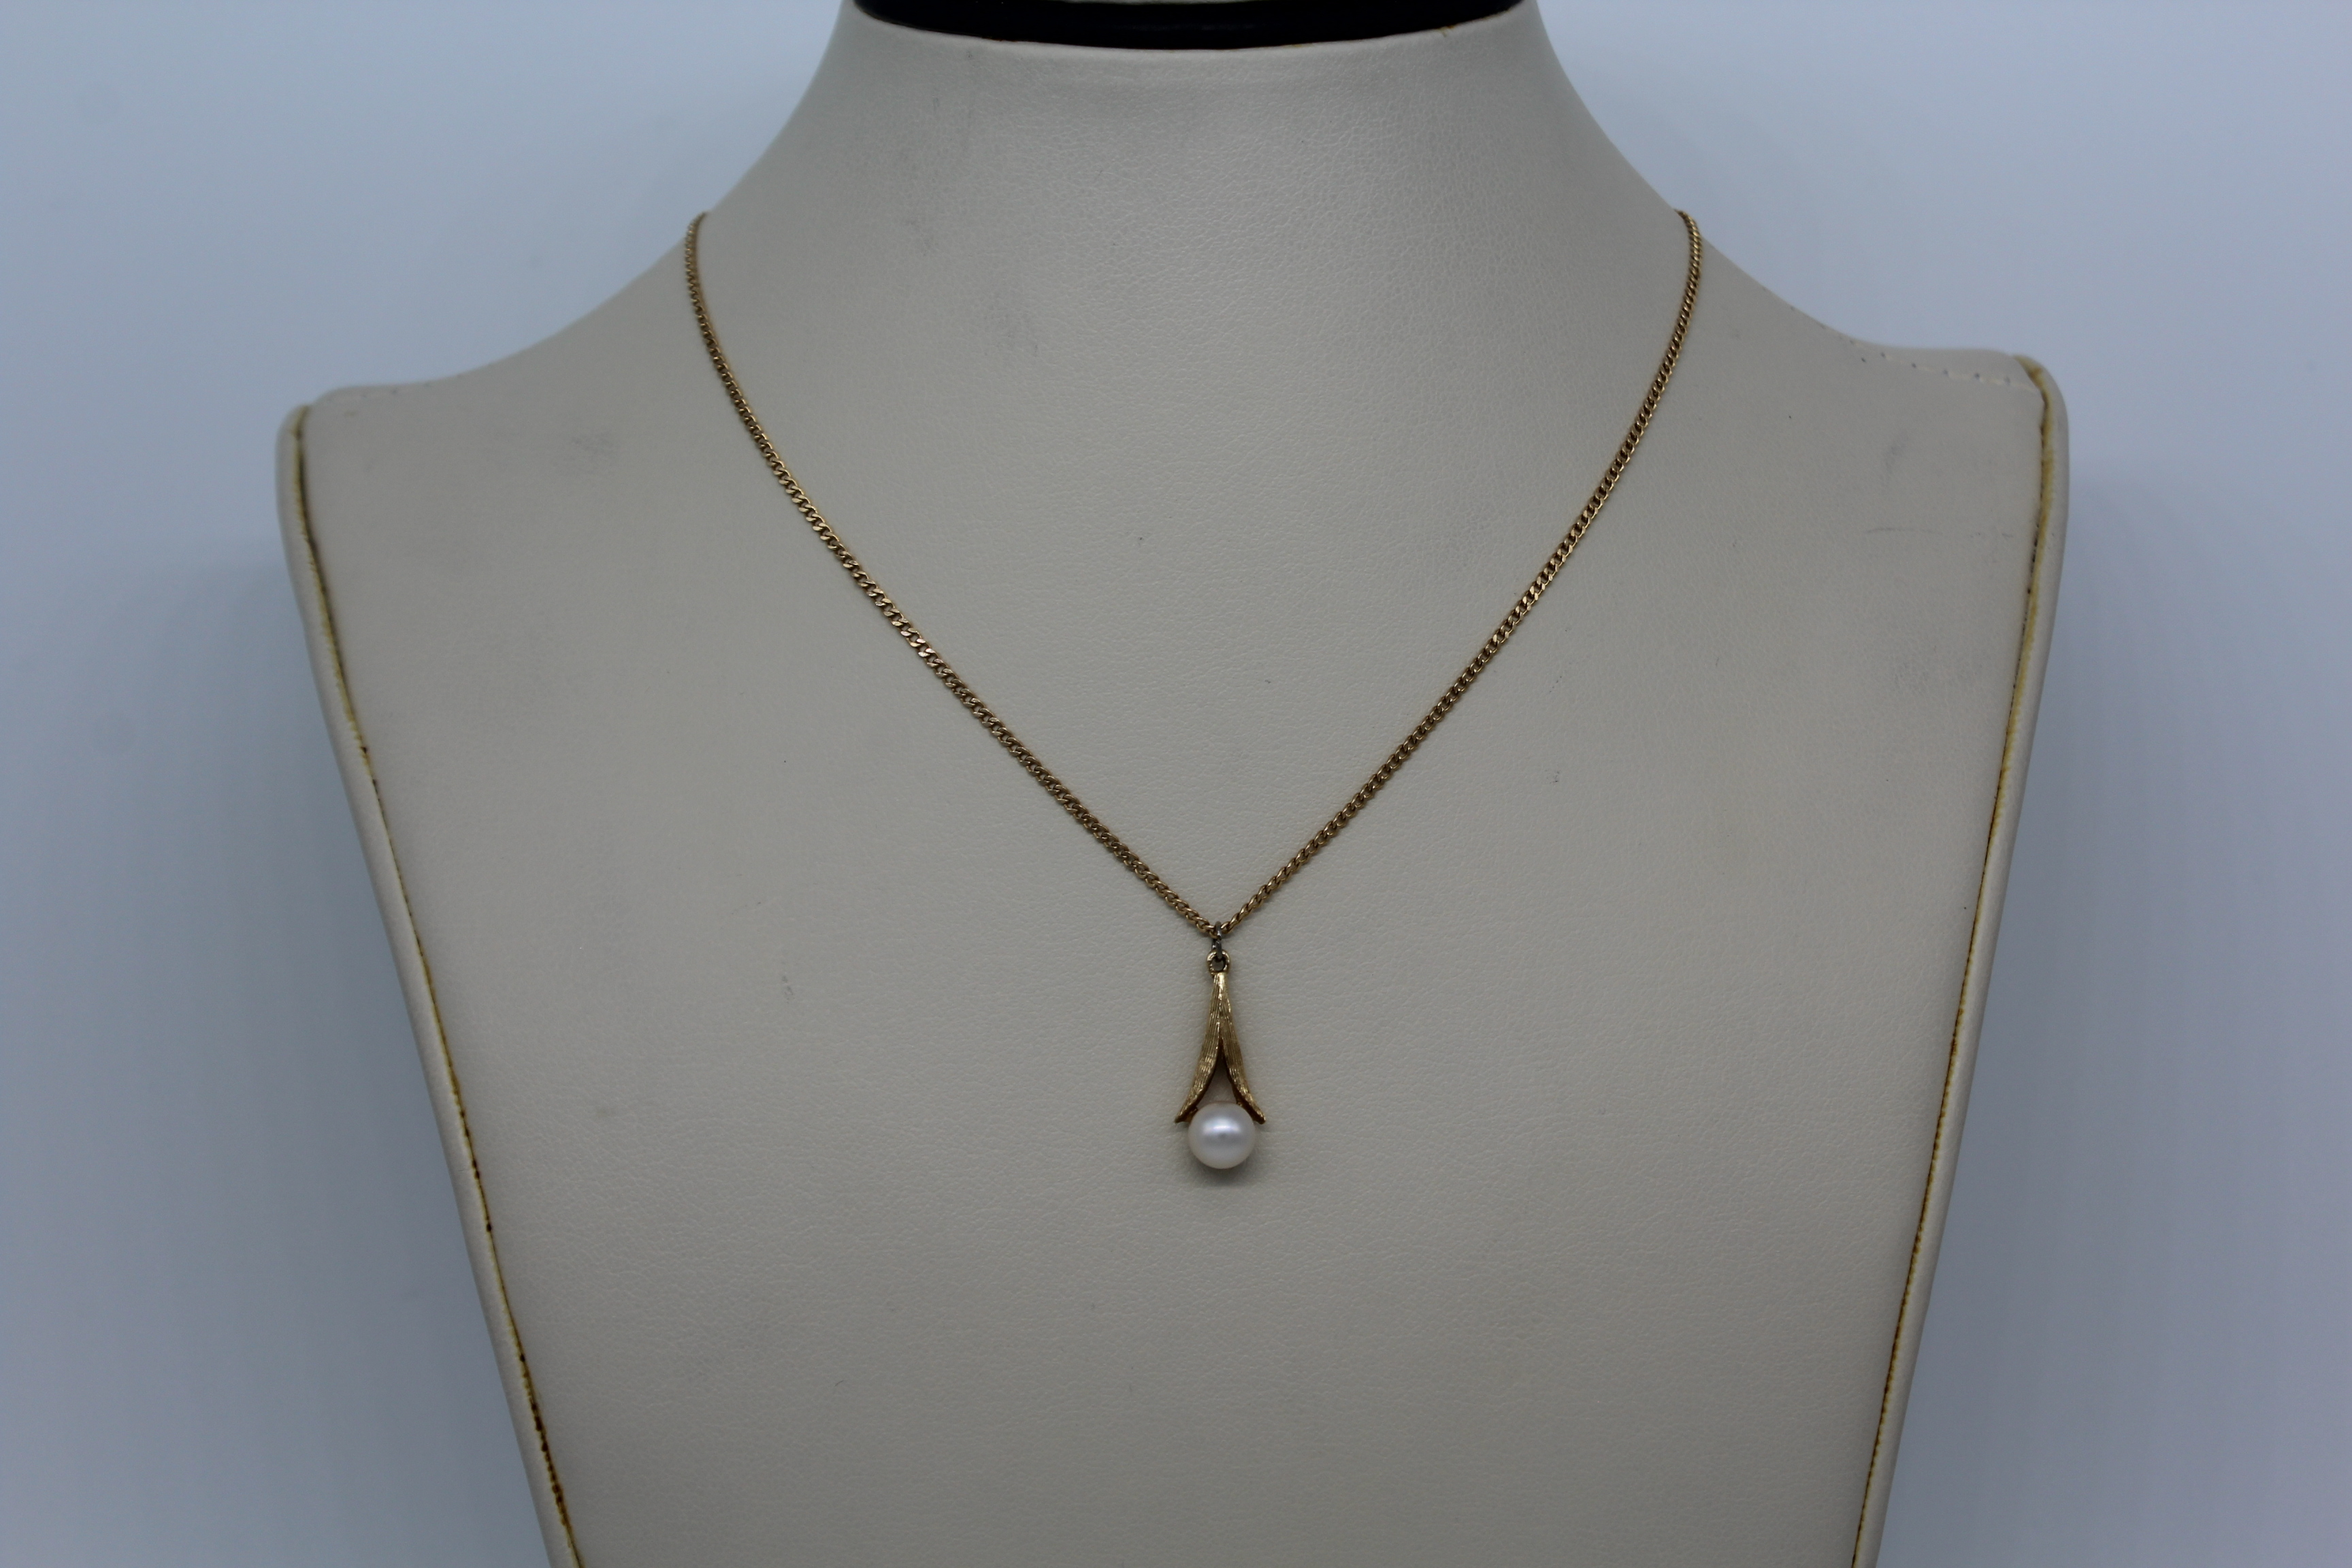 14K Yellow Gold with White Stone Necklace